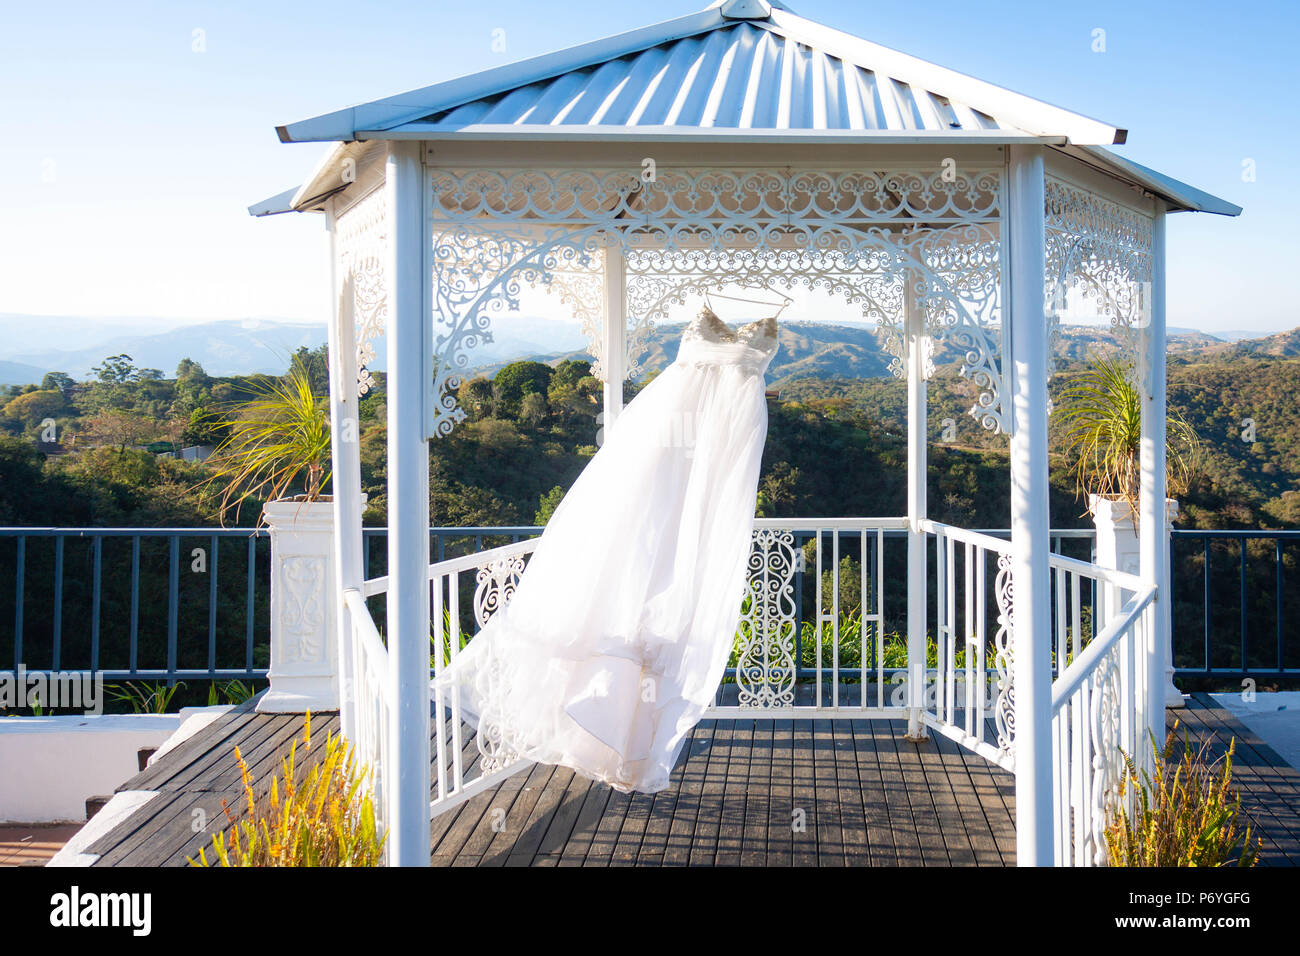 A white wedding dress hanging underneath a white gazebo blowing in the breeze with a view of the Thousand Hills in KwaZulu Natal, South Africa. Stock Photo